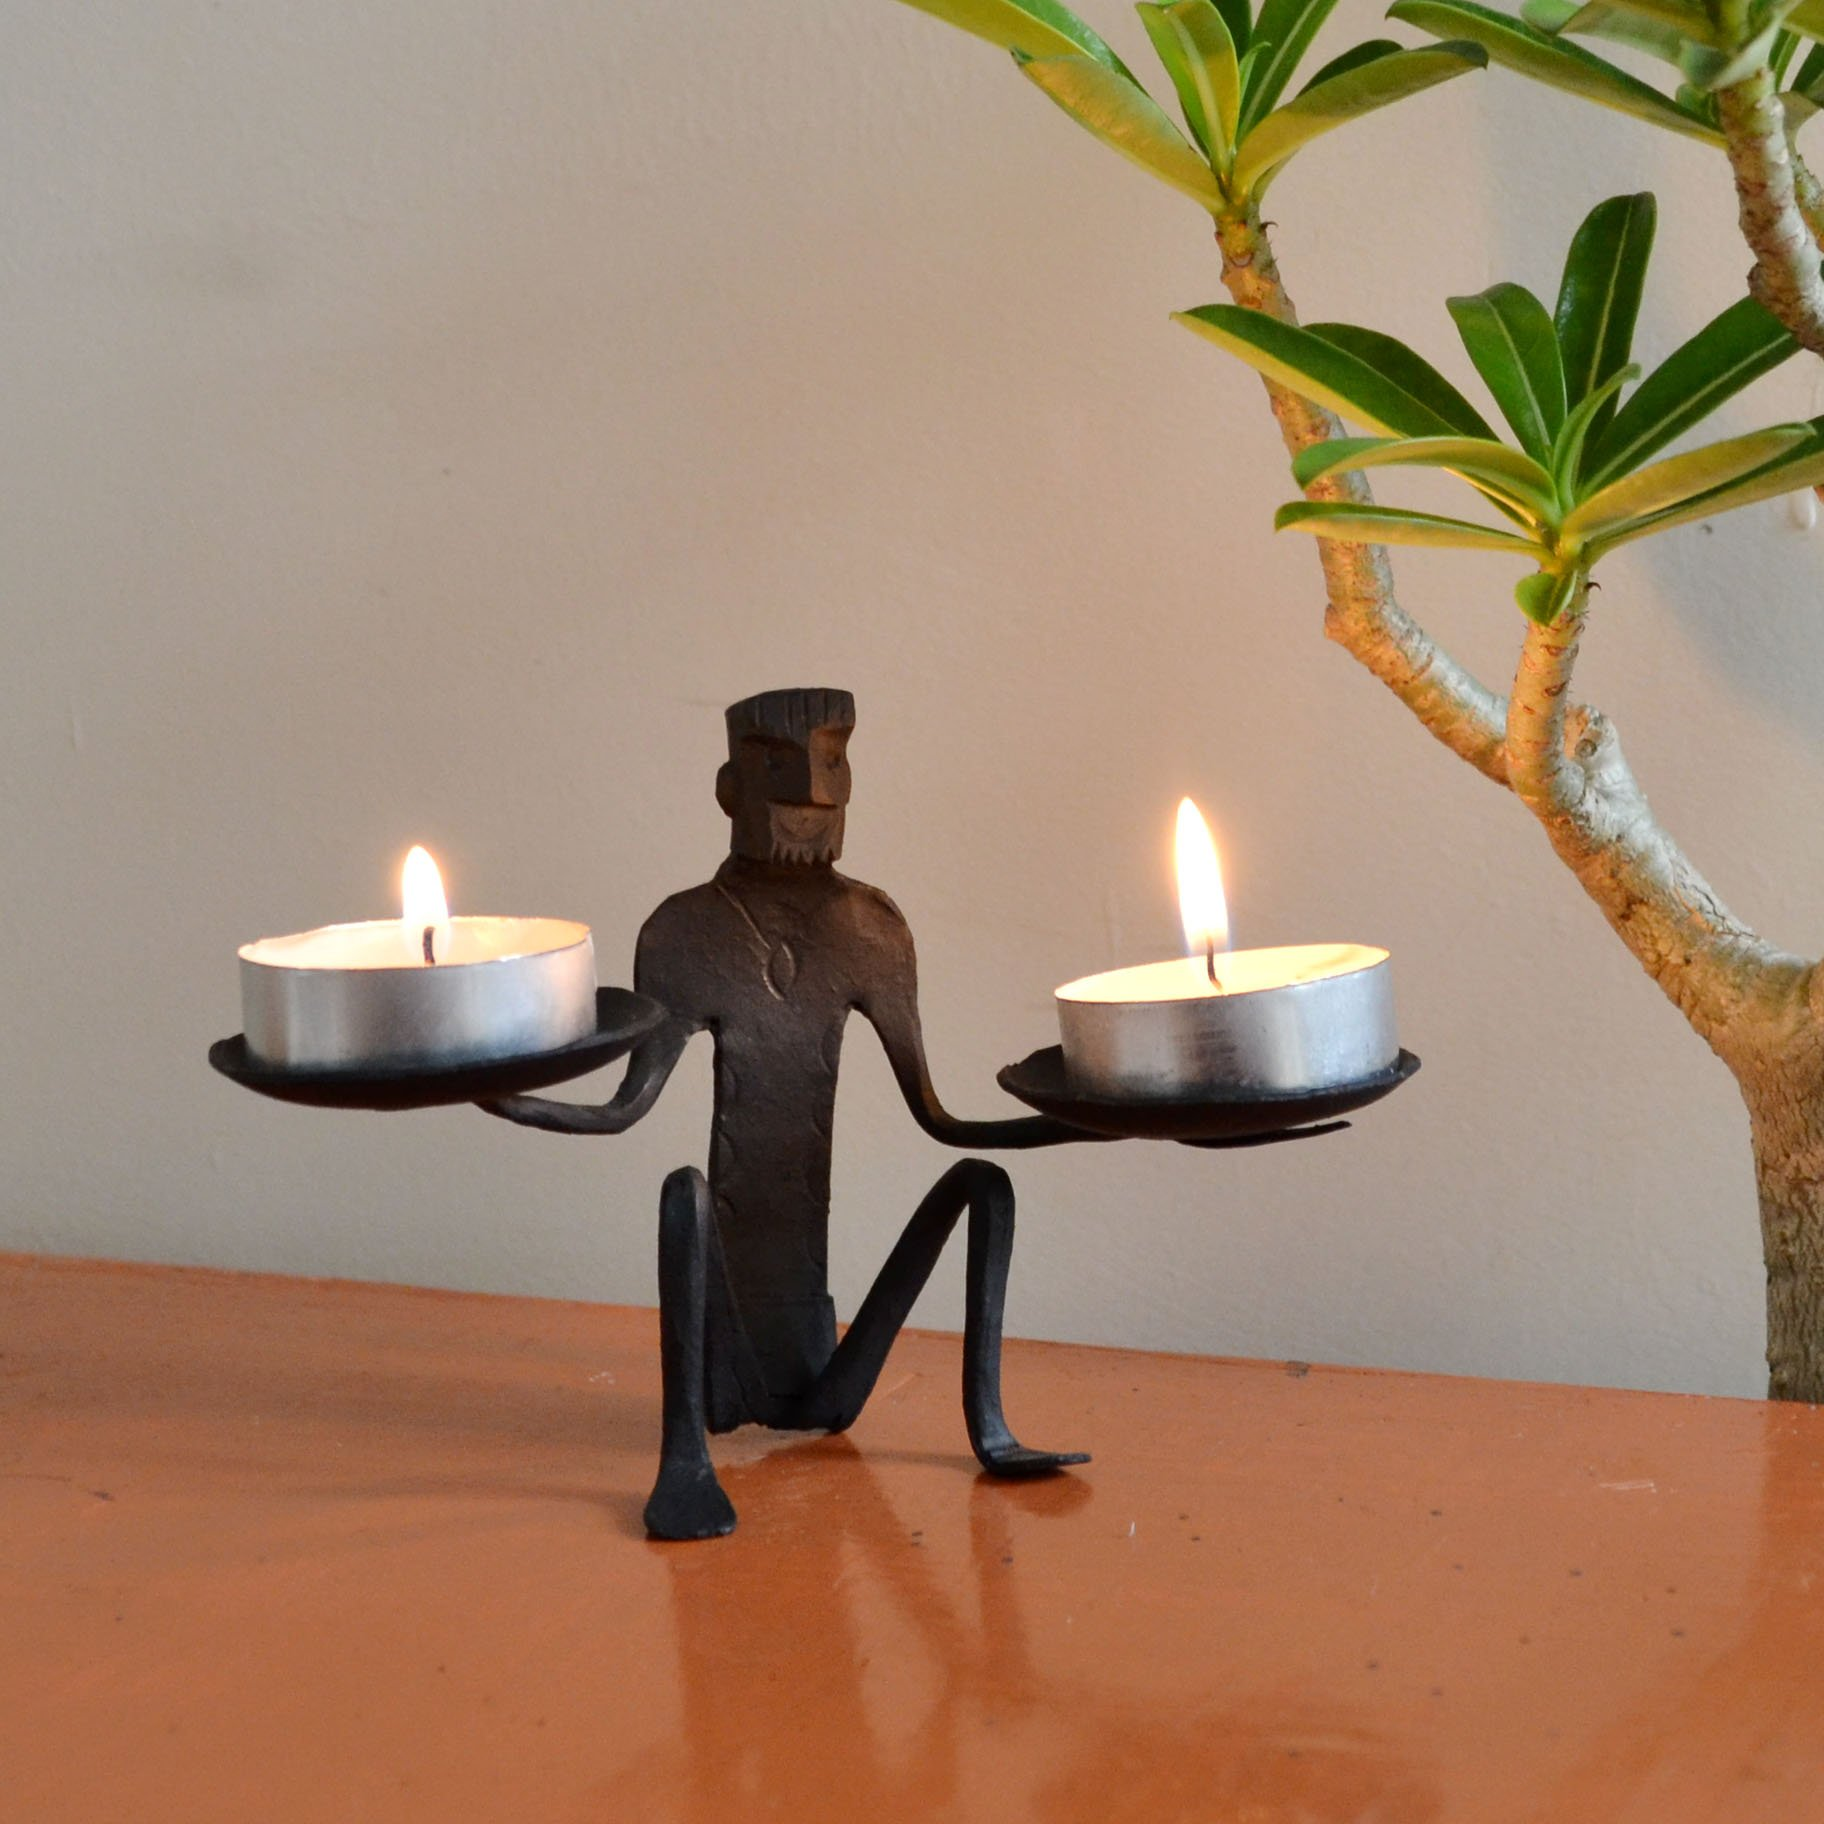 Chinhhari Arts, Indian Decorative African Tribal Arts Table Decor Candle Stand Wrought Iron Handmade Accents